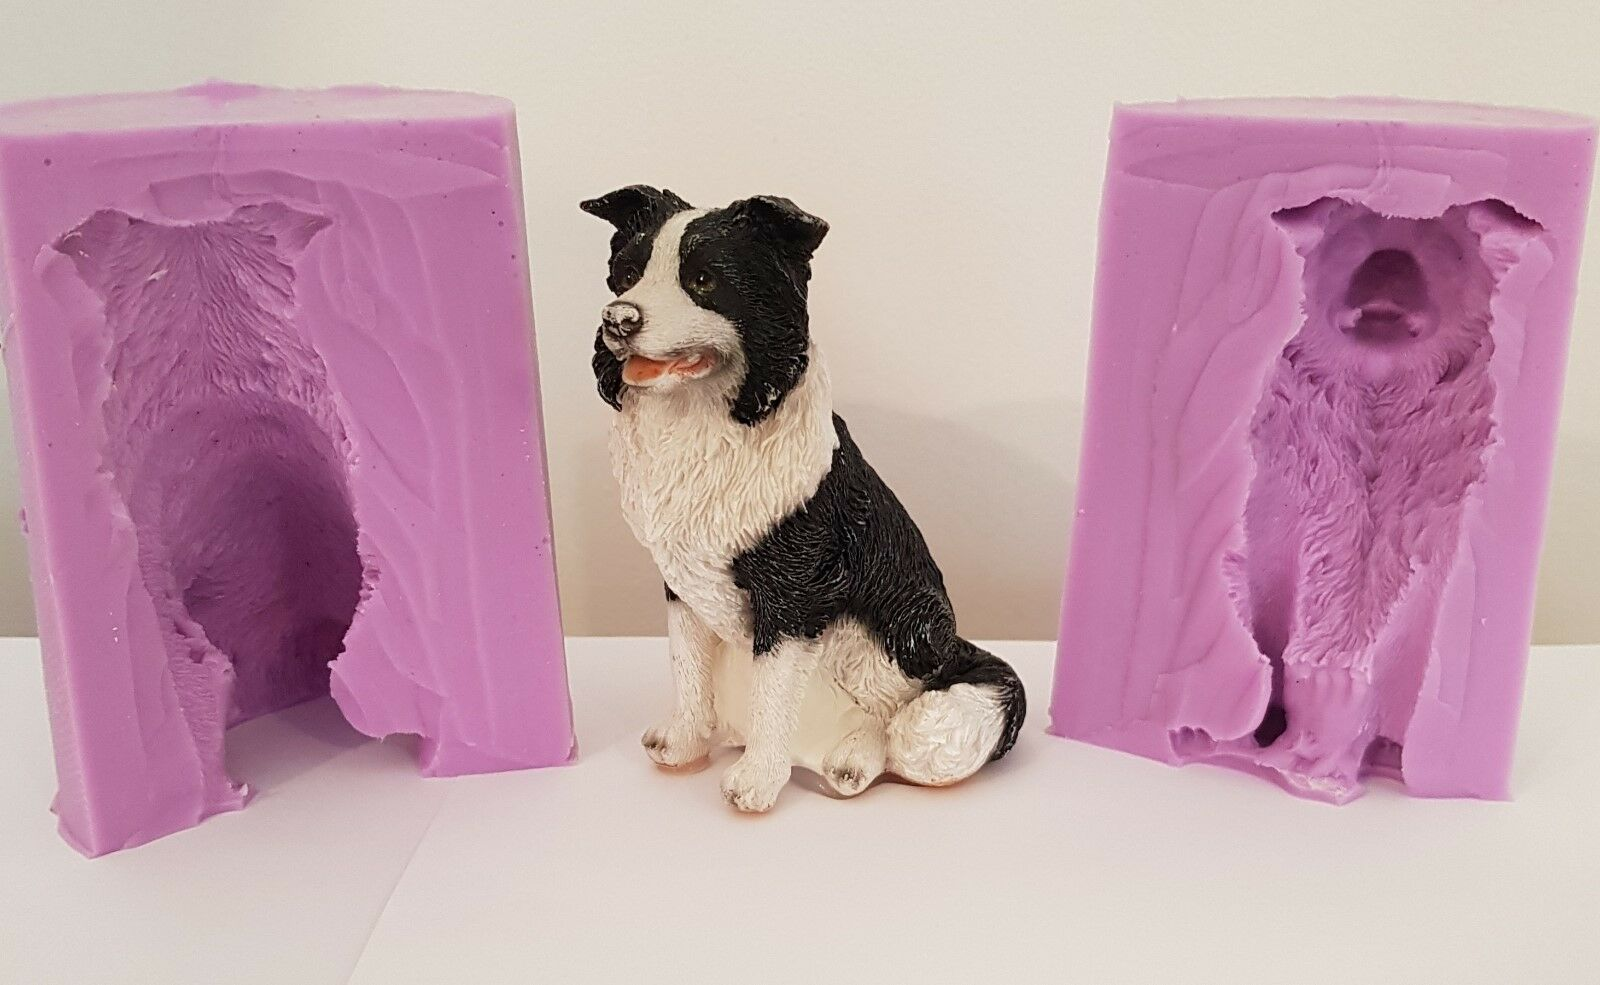 3D 10cm BORDER COLLIE DOG SILICONE MOULD FOR CHOCOLATE, CLAY, CANDLES ETC